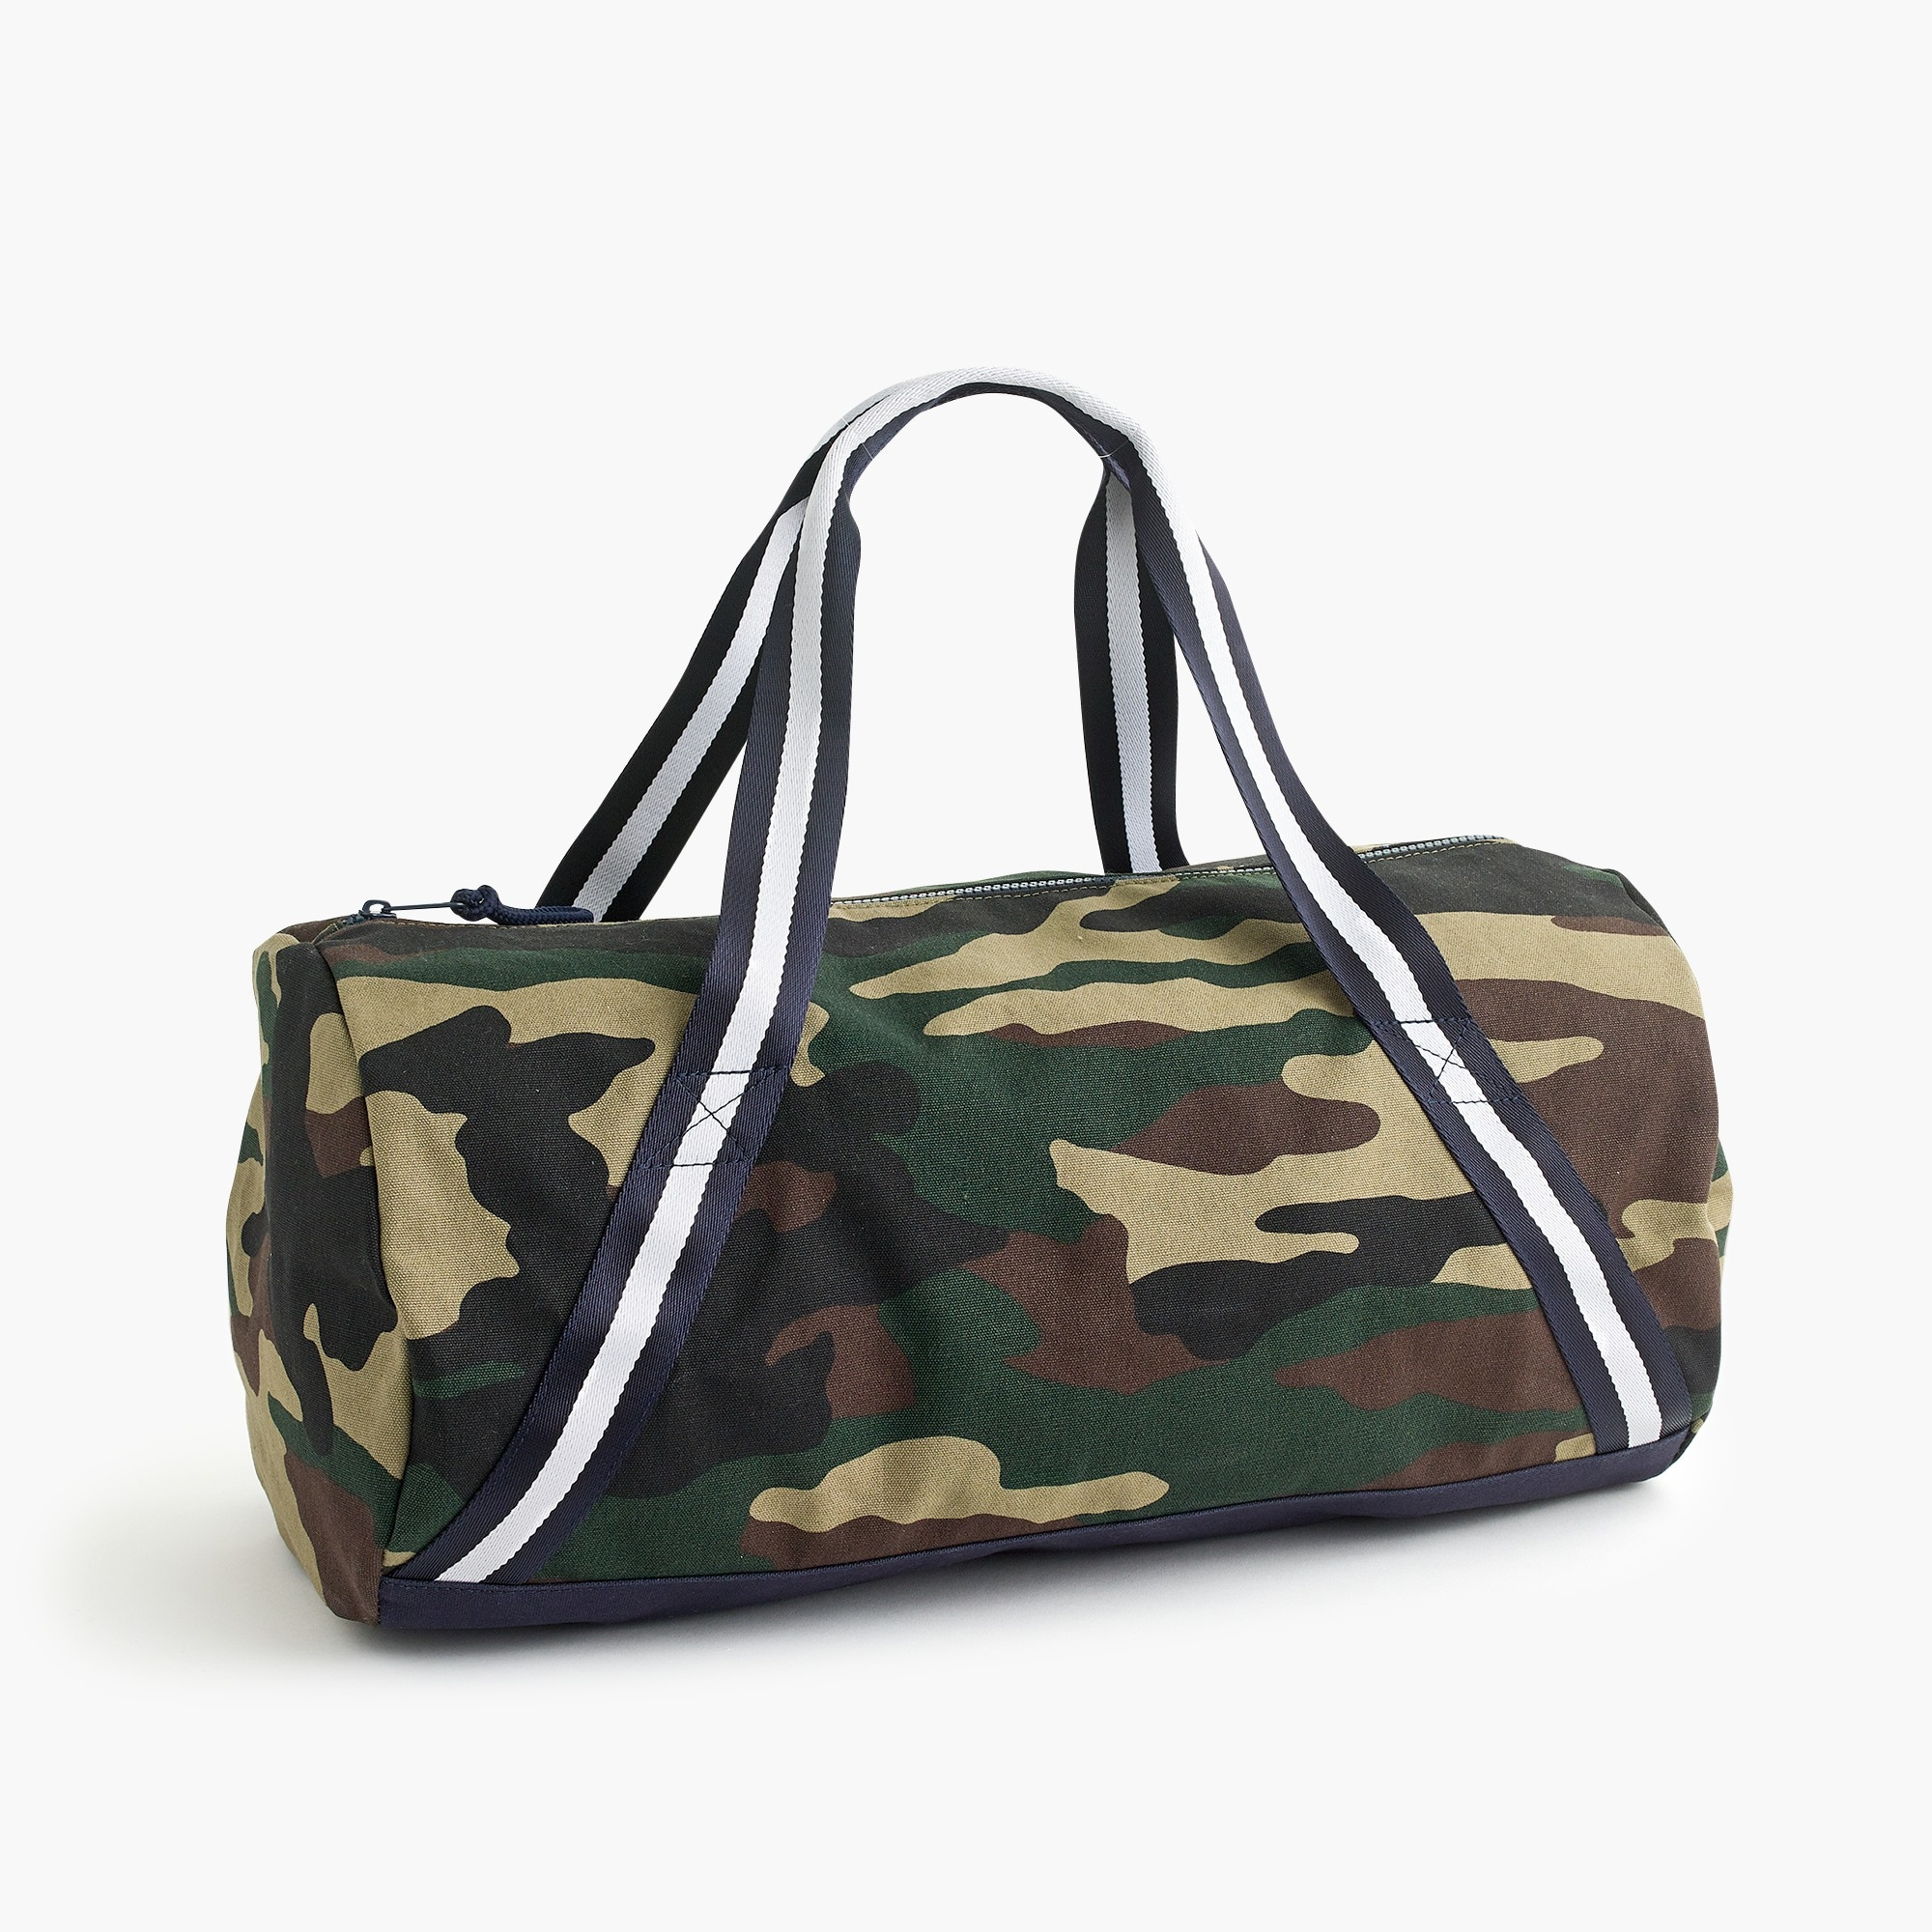 Kids' overnight bag in camo boy accessories c